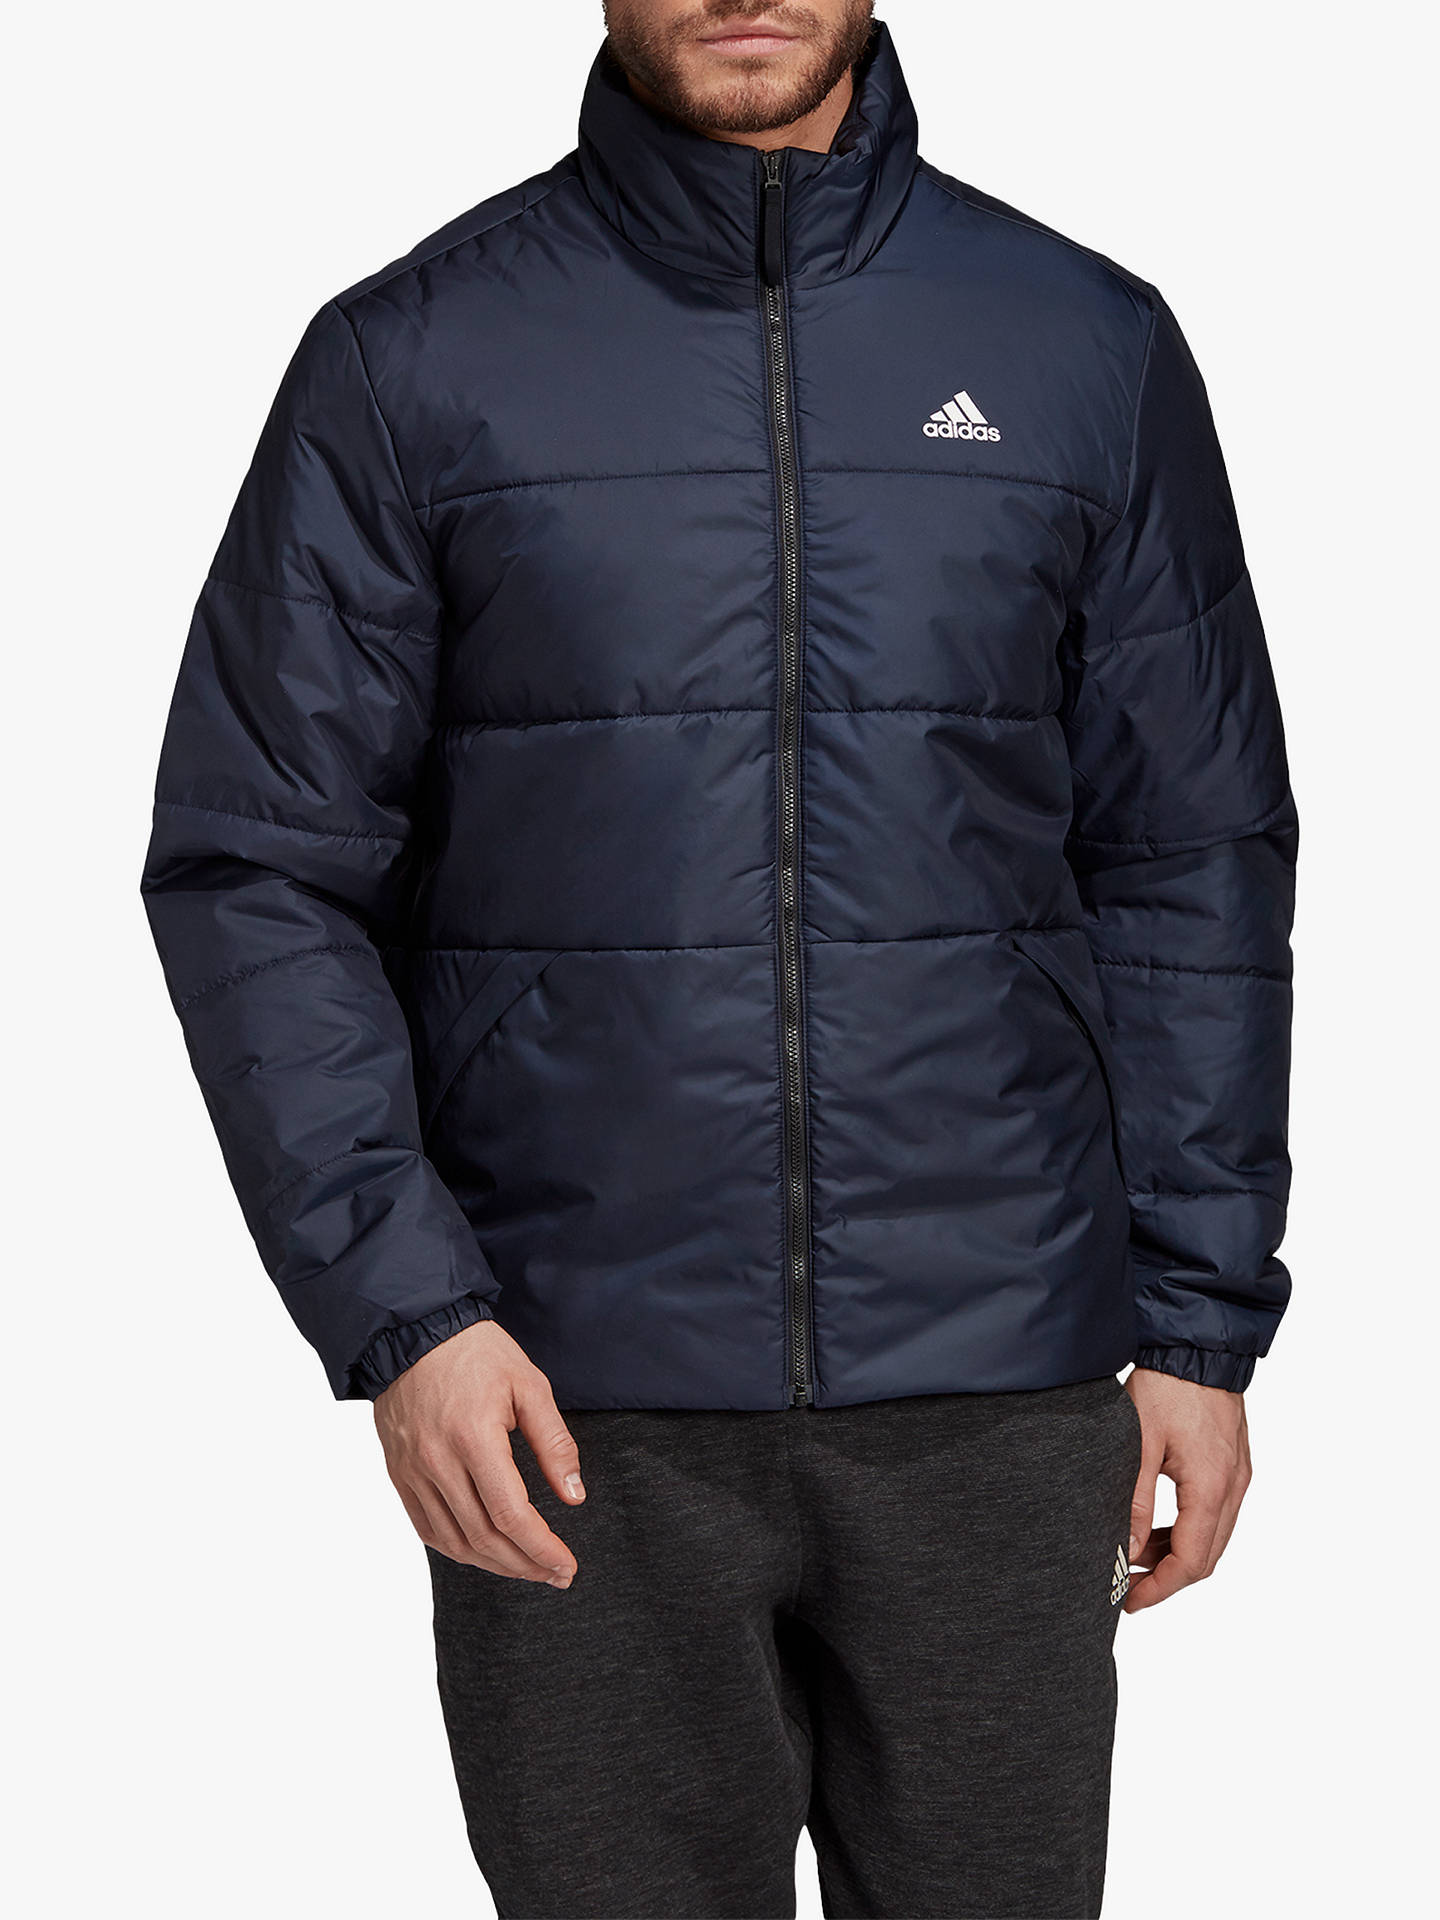 adidas BSC 3 Stripes Insulated Jacket, Legend Ink